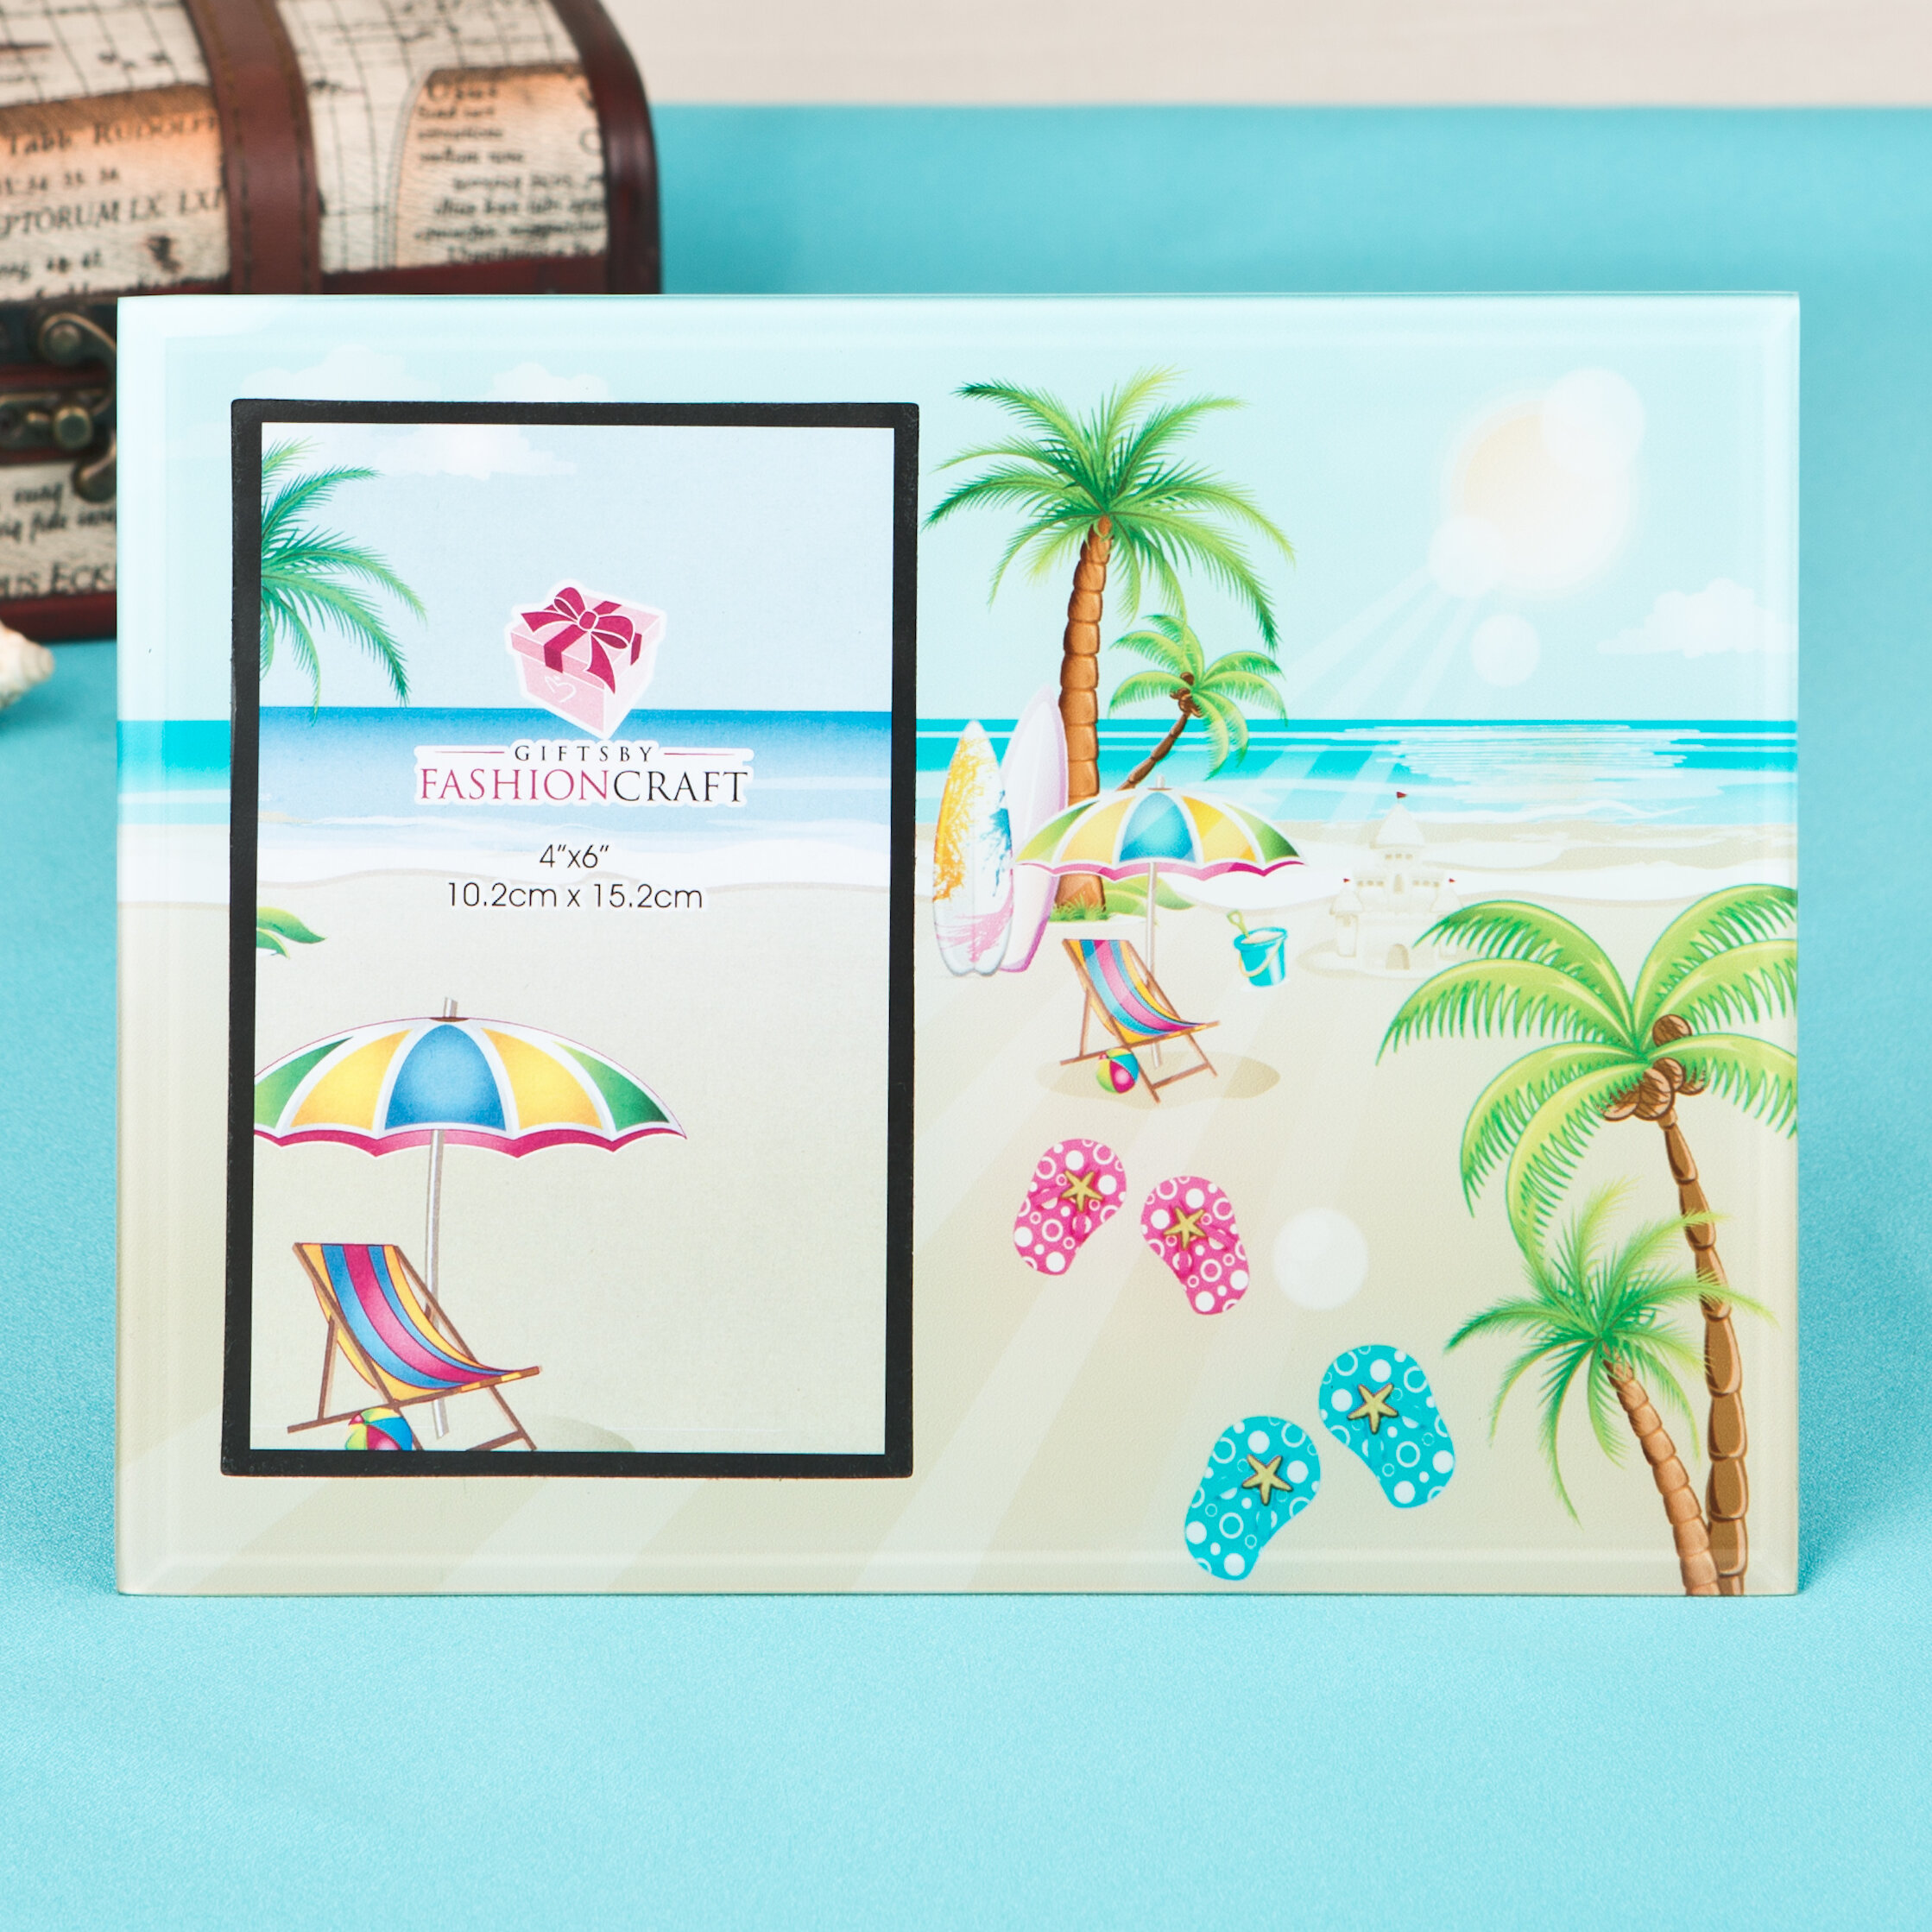 Highland Dunes Lovely Flip Flop, Palm Trees, Beach Picture Frame ...